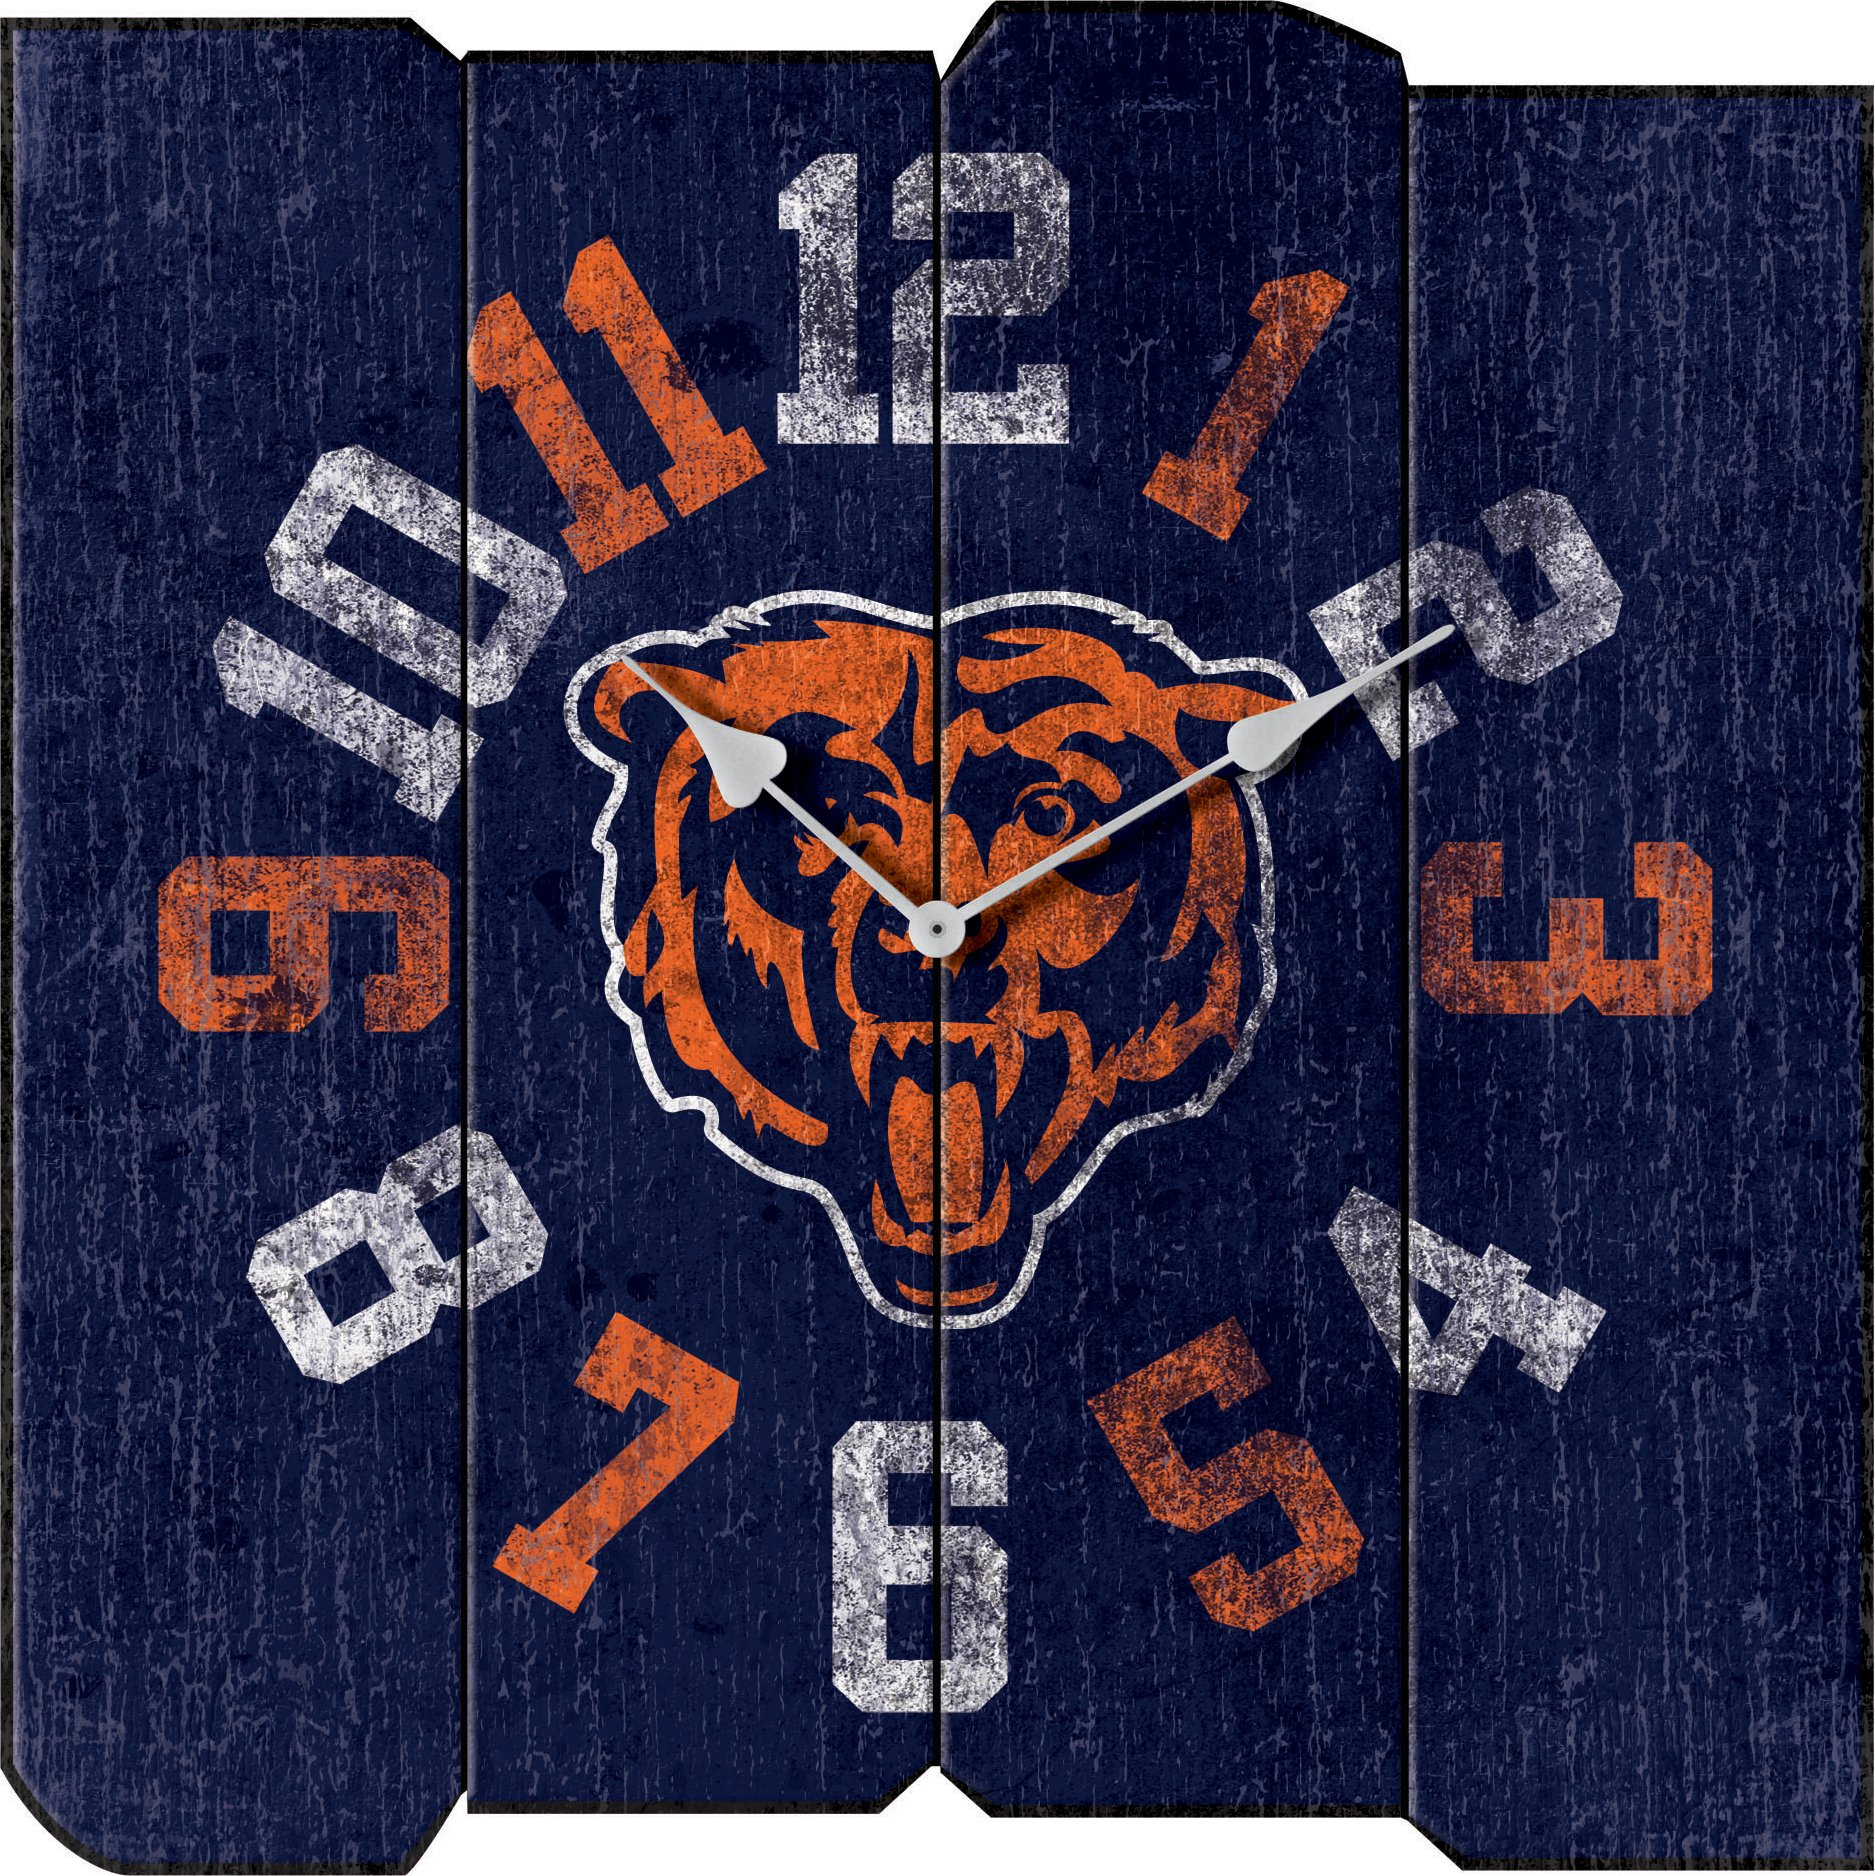 Imperial Officially Licensed NFL Merchandise: Vintage Square Clock, Chicago Bears by Imperial